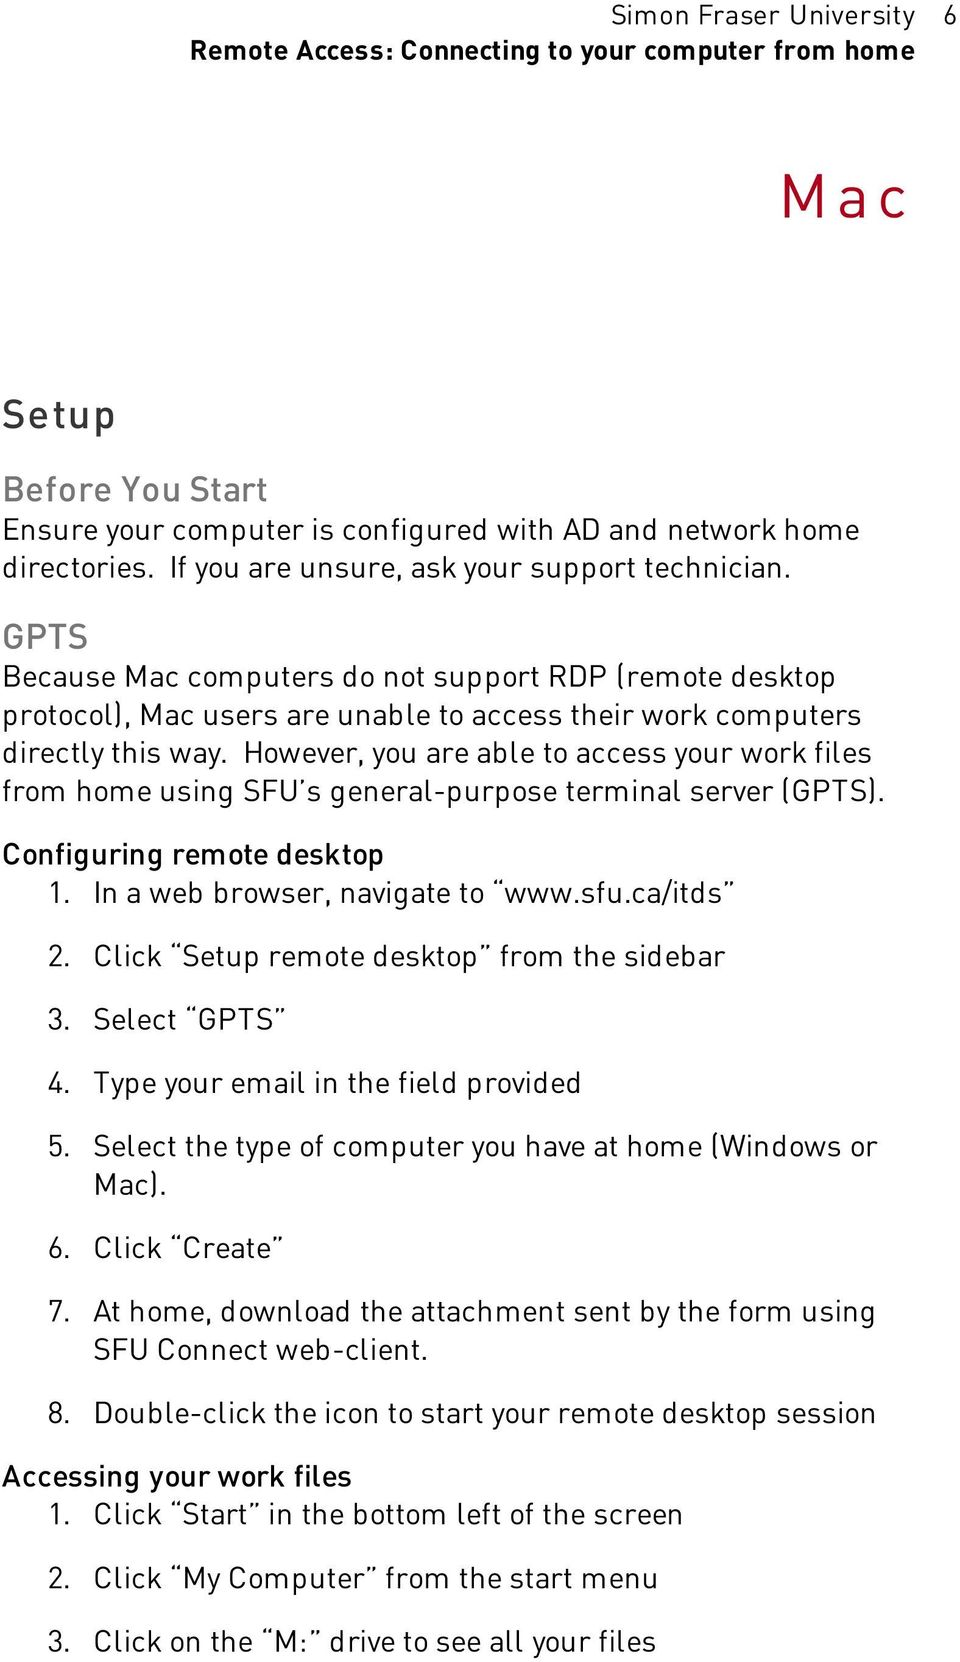 However, you are able to access your work files from home using SFU s general-purpose terminal server (GPTS). Configuring remote desktop 1. In a web browser, navigate to www.sfu.ca/itds 2.